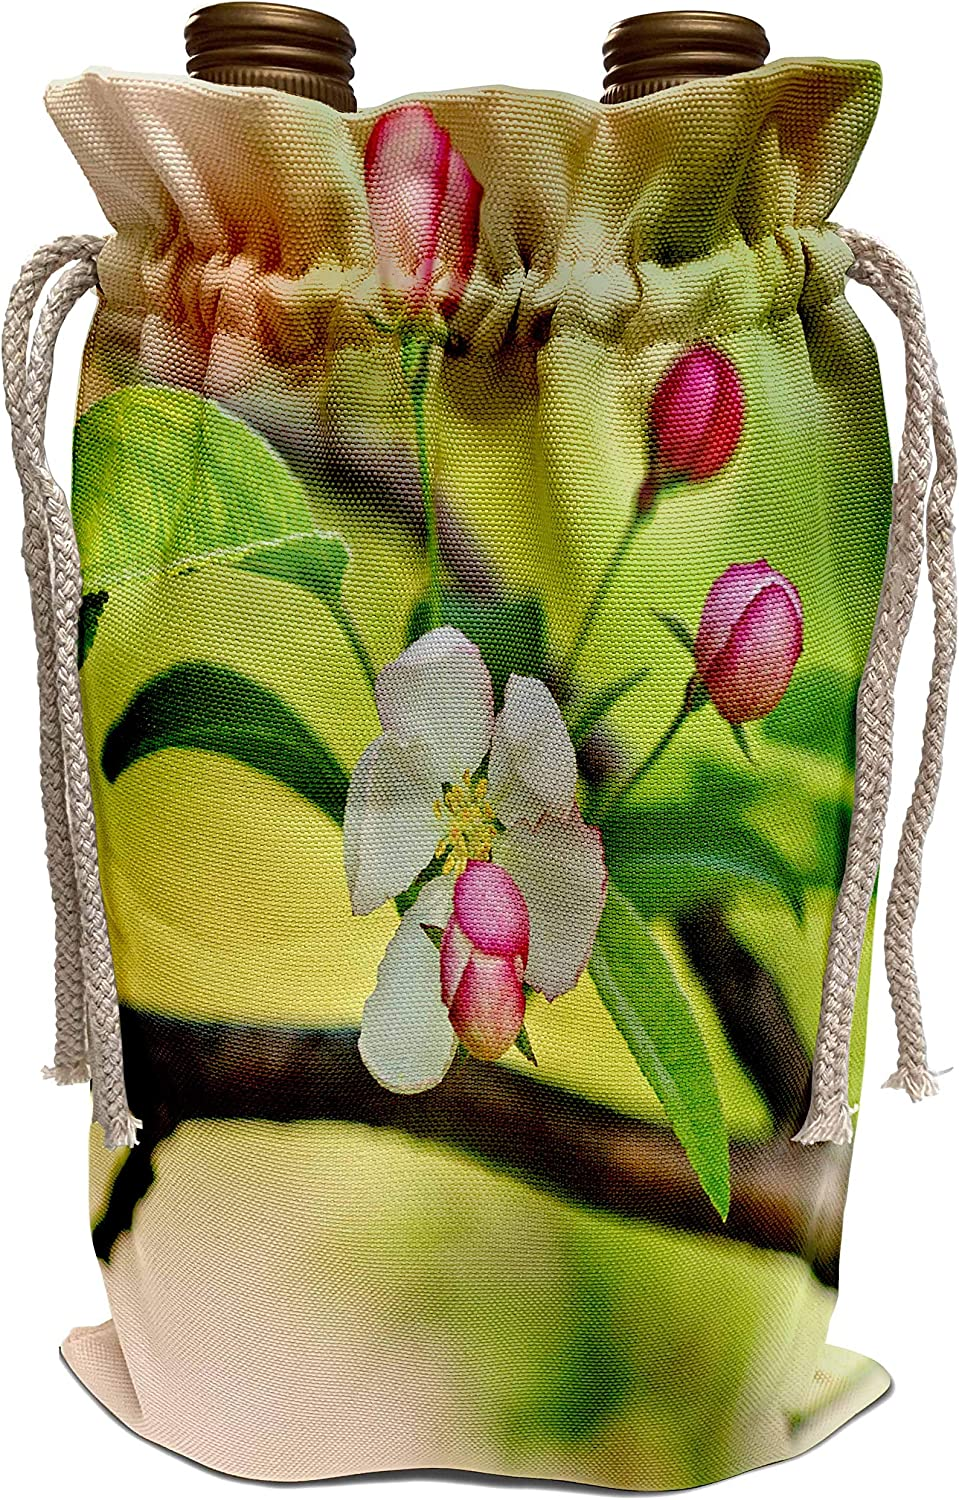 3dRose Alexis Photography - Flowers Crab Apple Blossoms - White crab apple flower, pink buds on a tree twig, green, beige color - Wine Bag (wbg_305605_1)